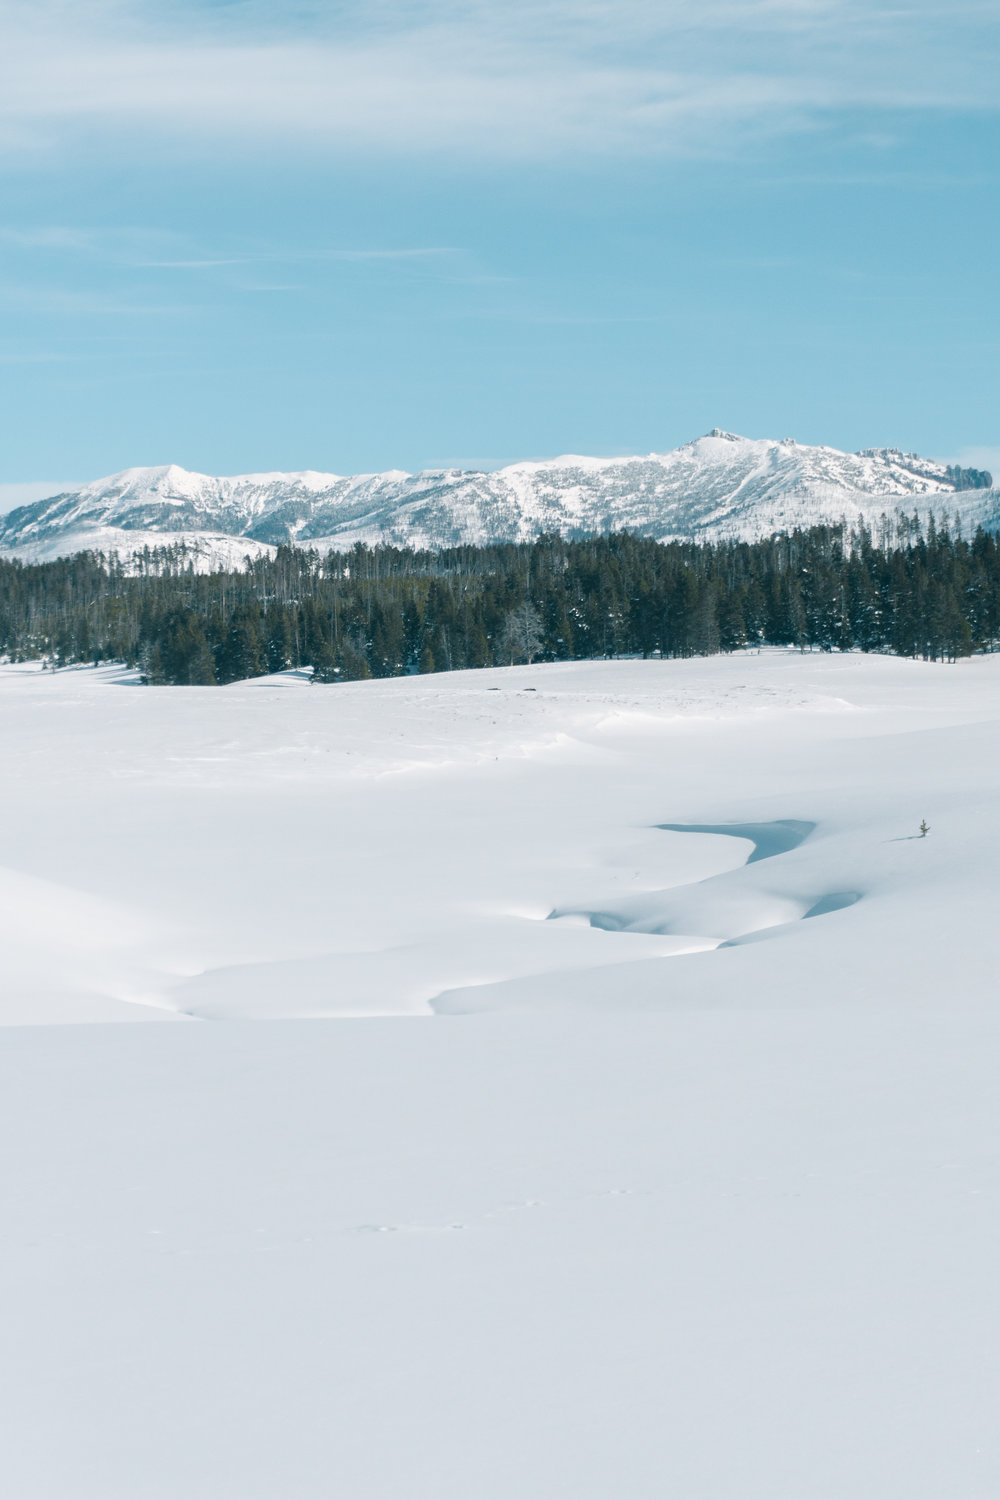 The Absaroka Range rising above the Pelican Valley of Yellowstone National Park.